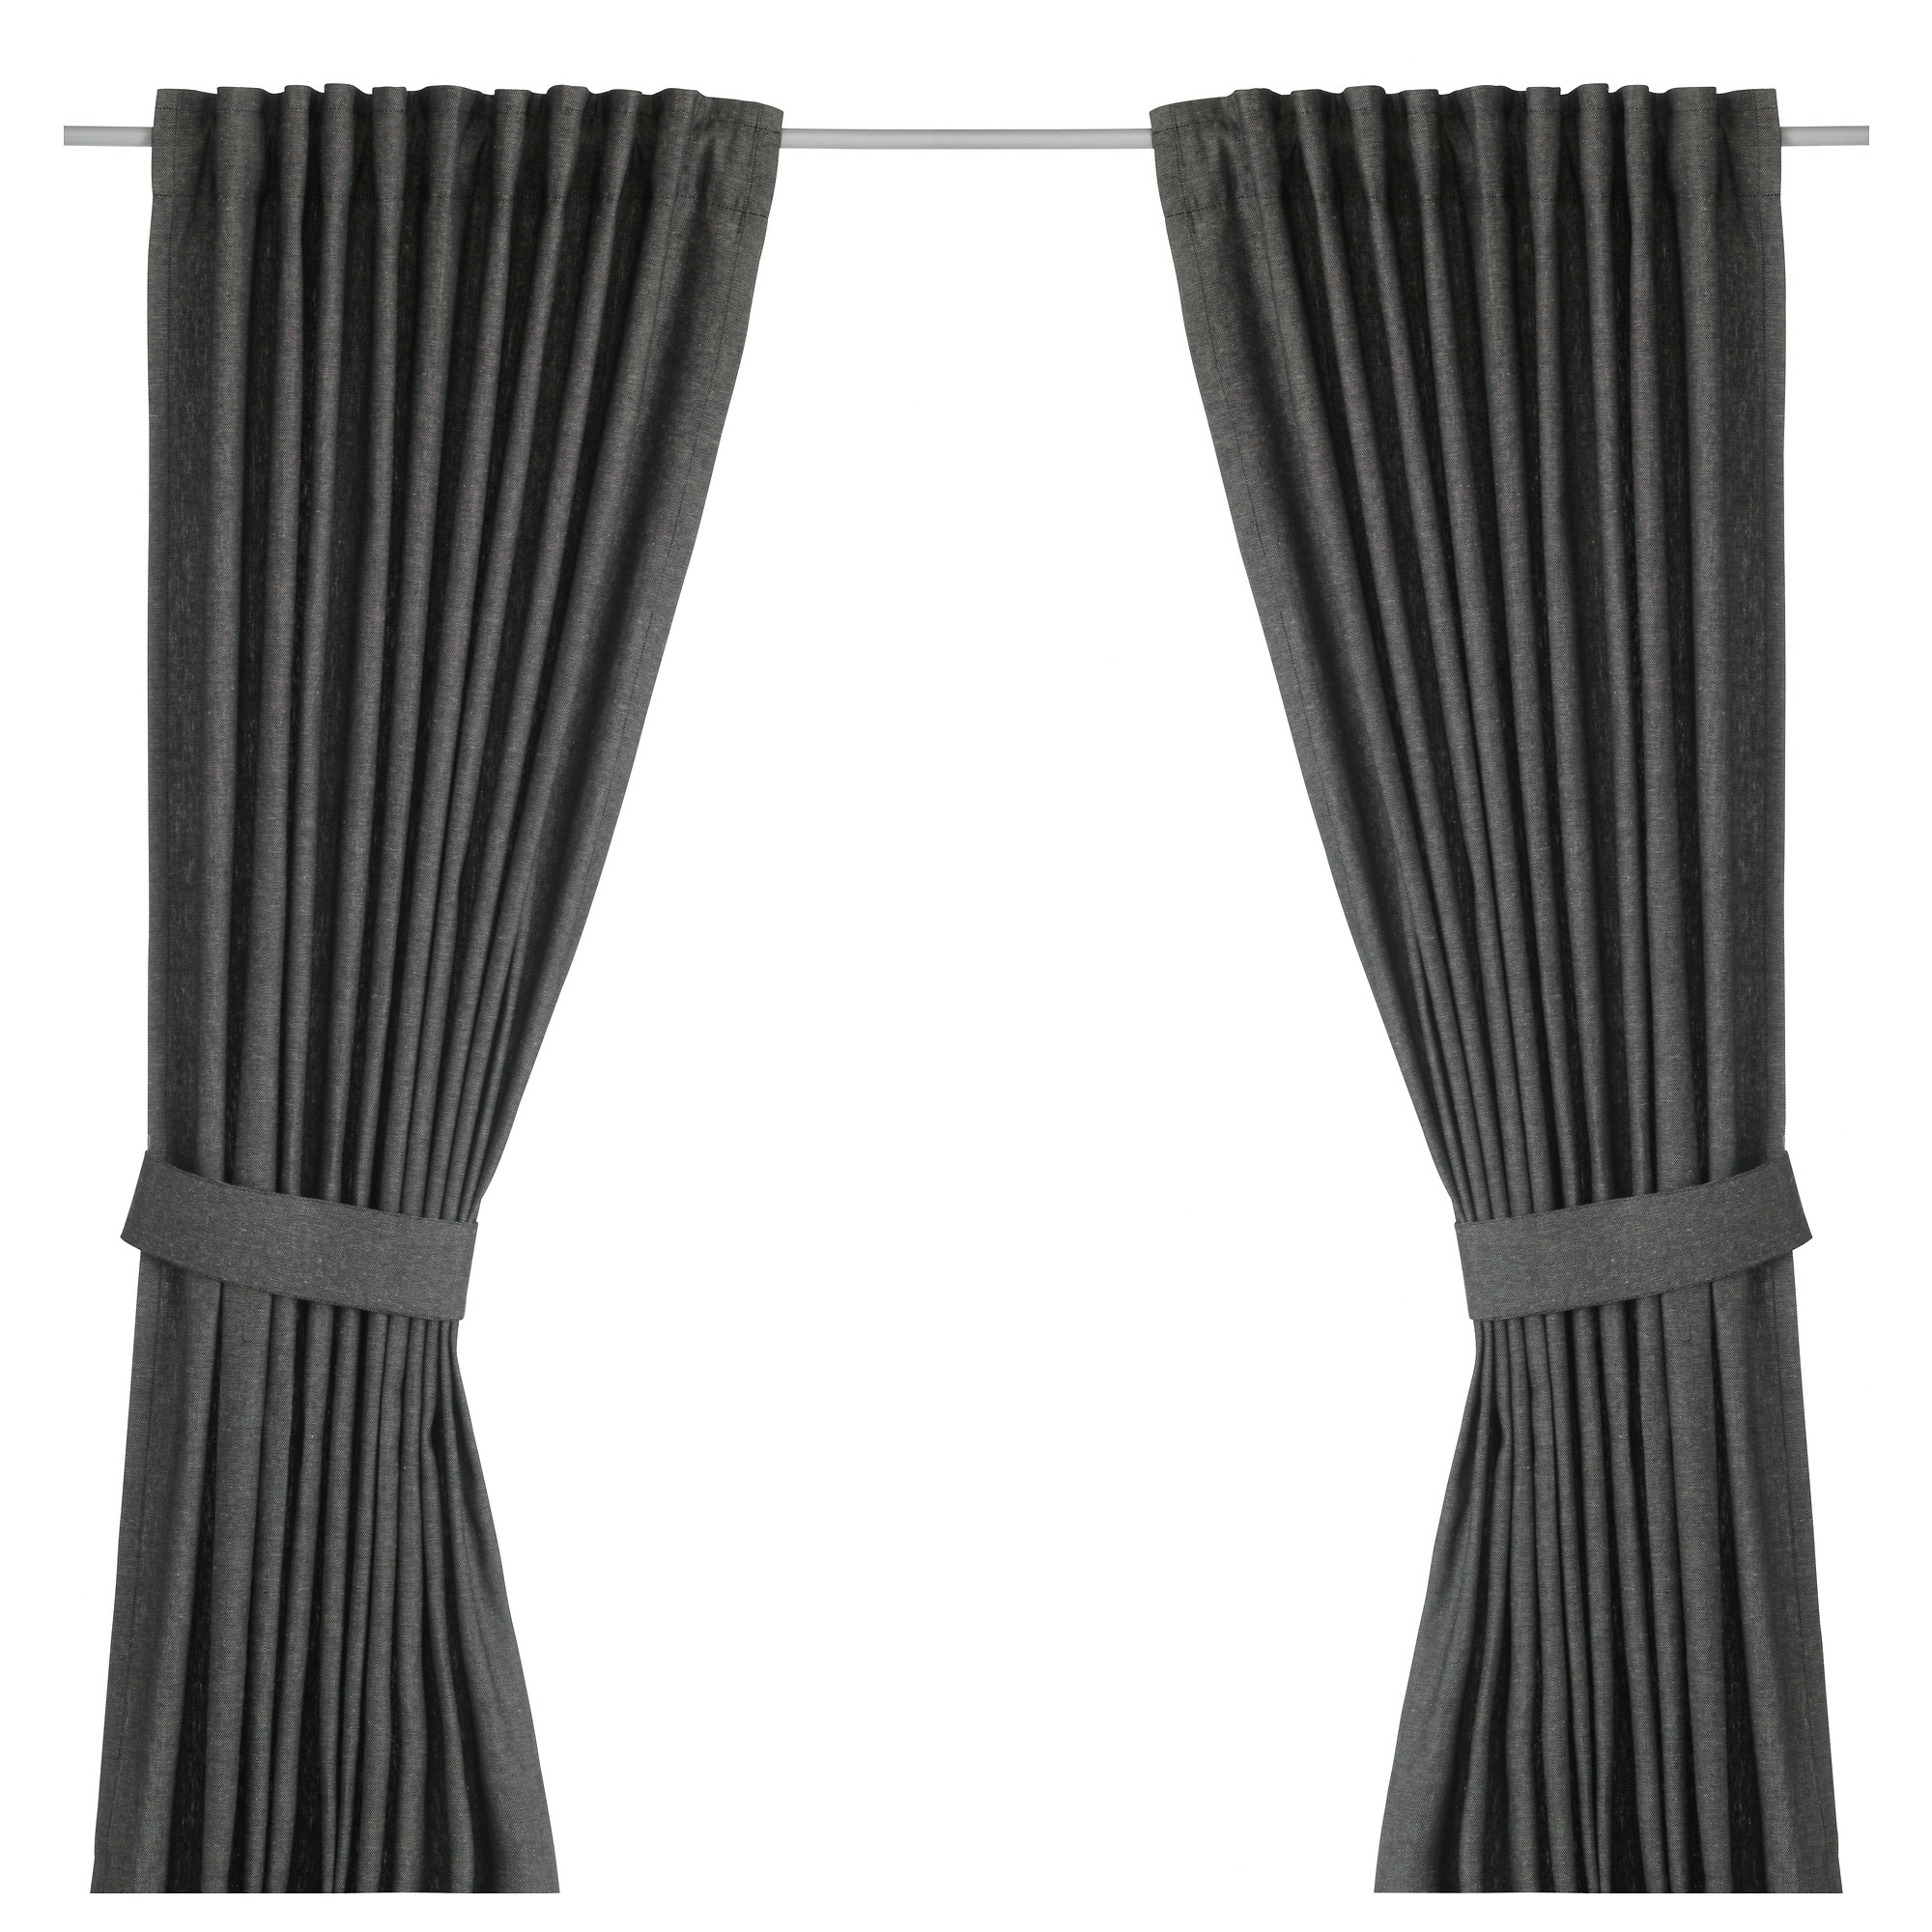 curtain blinds ingert curtains with tie-backs, 1 pair, dark gray length: 98  TESFCLH